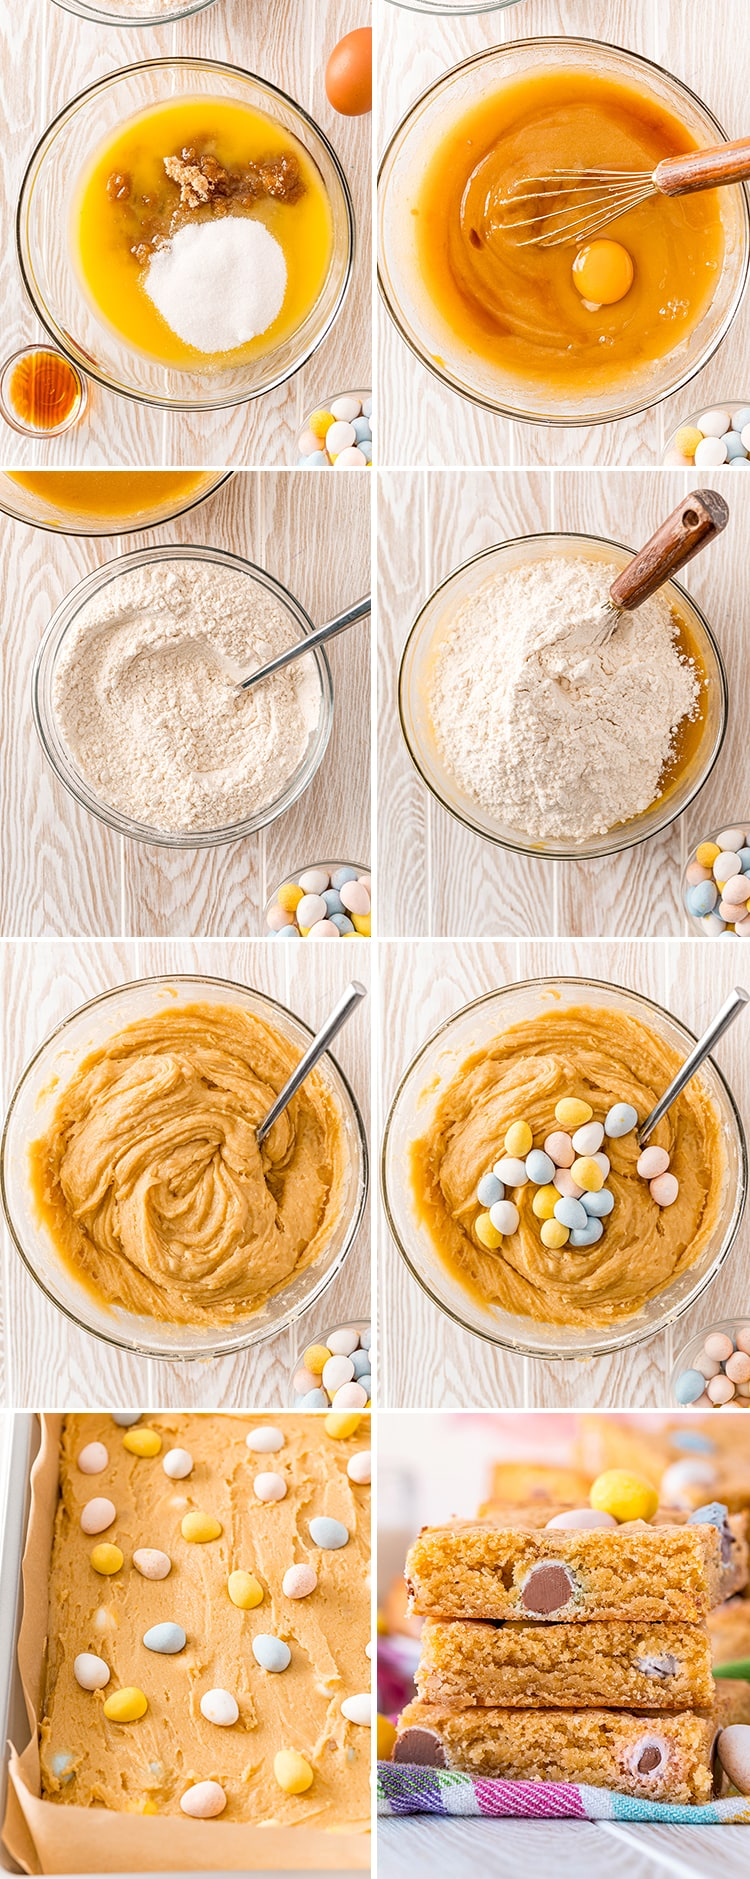 Step by step photos showing how to make cadbury mini egg cookie bars.